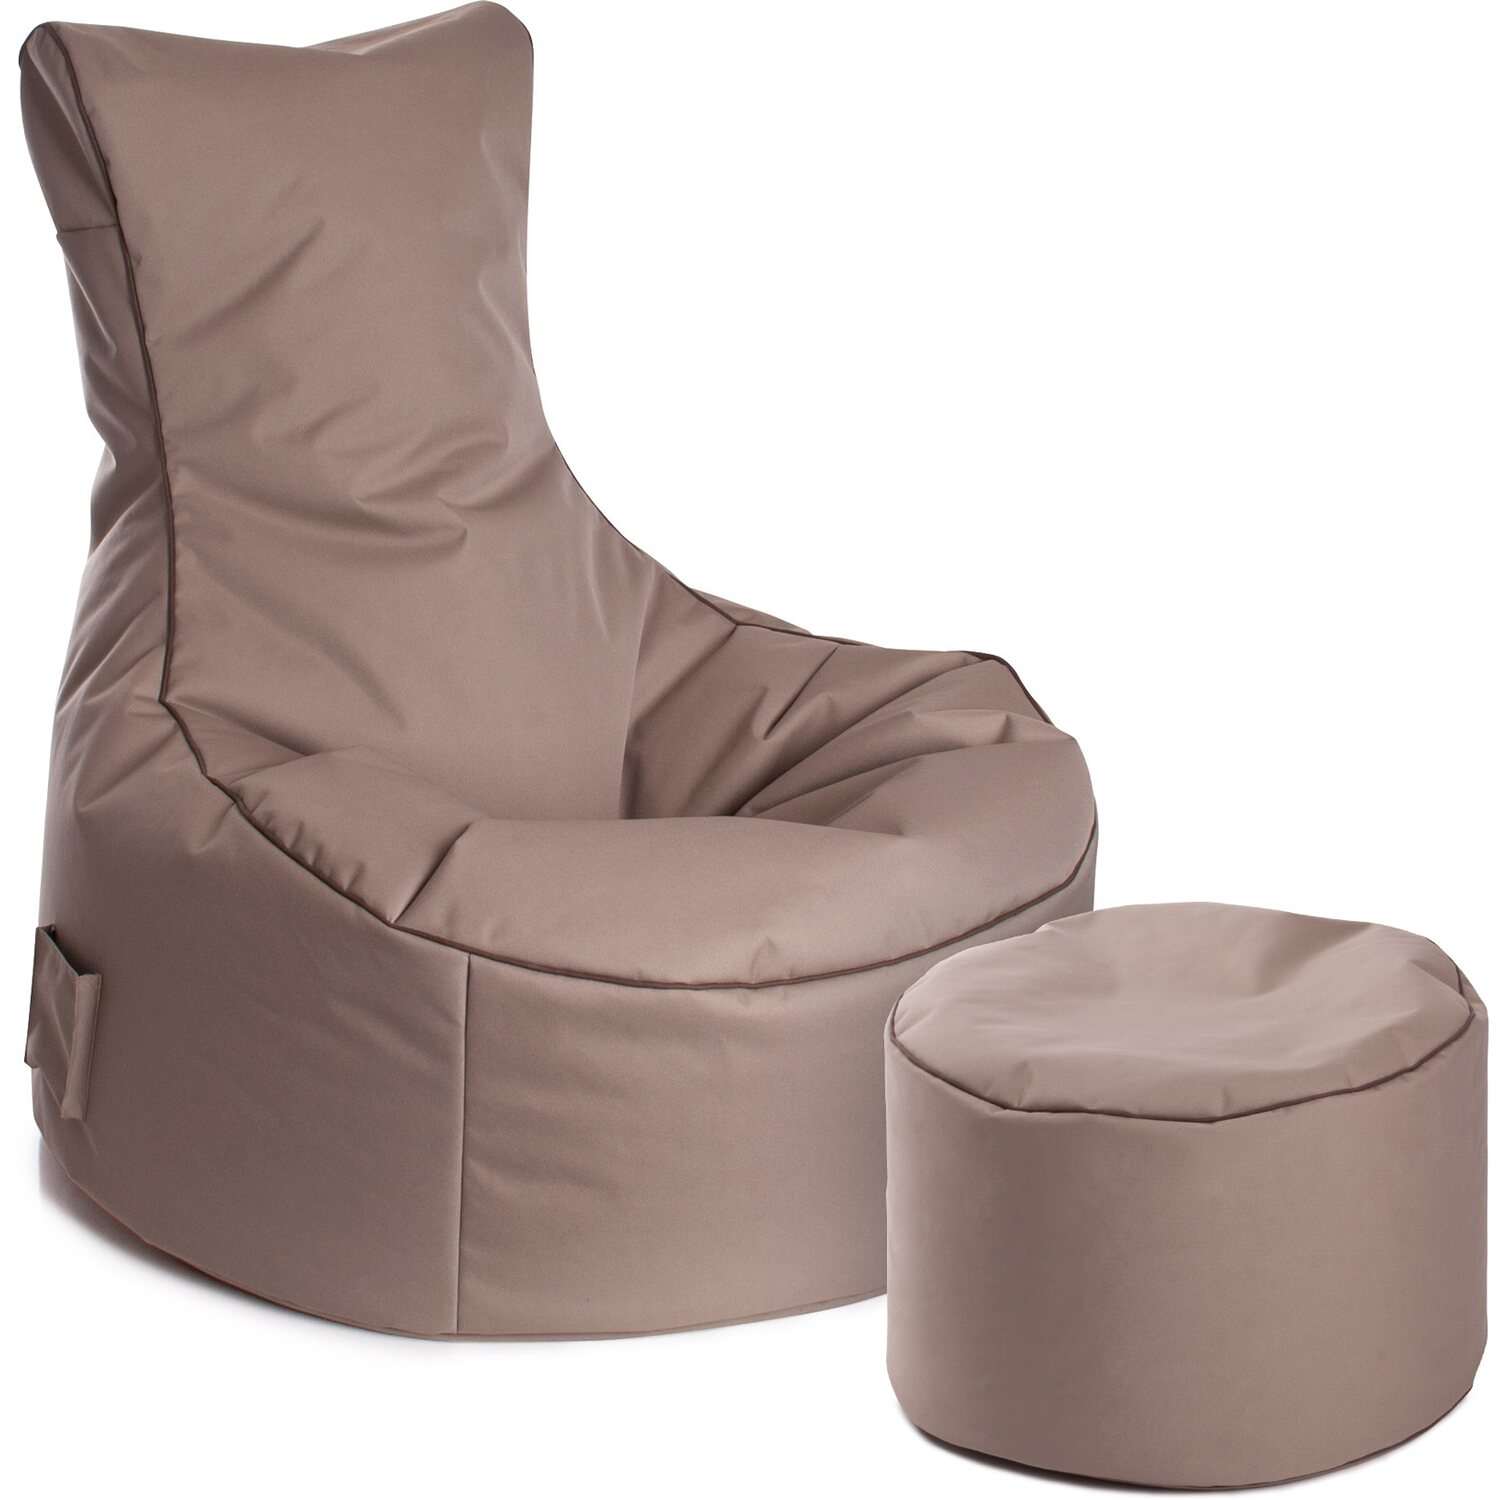 sitting point sitzsack set swing scuba und dotcom khaki kaufen bei obi. Black Bedroom Furniture Sets. Home Design Ideas